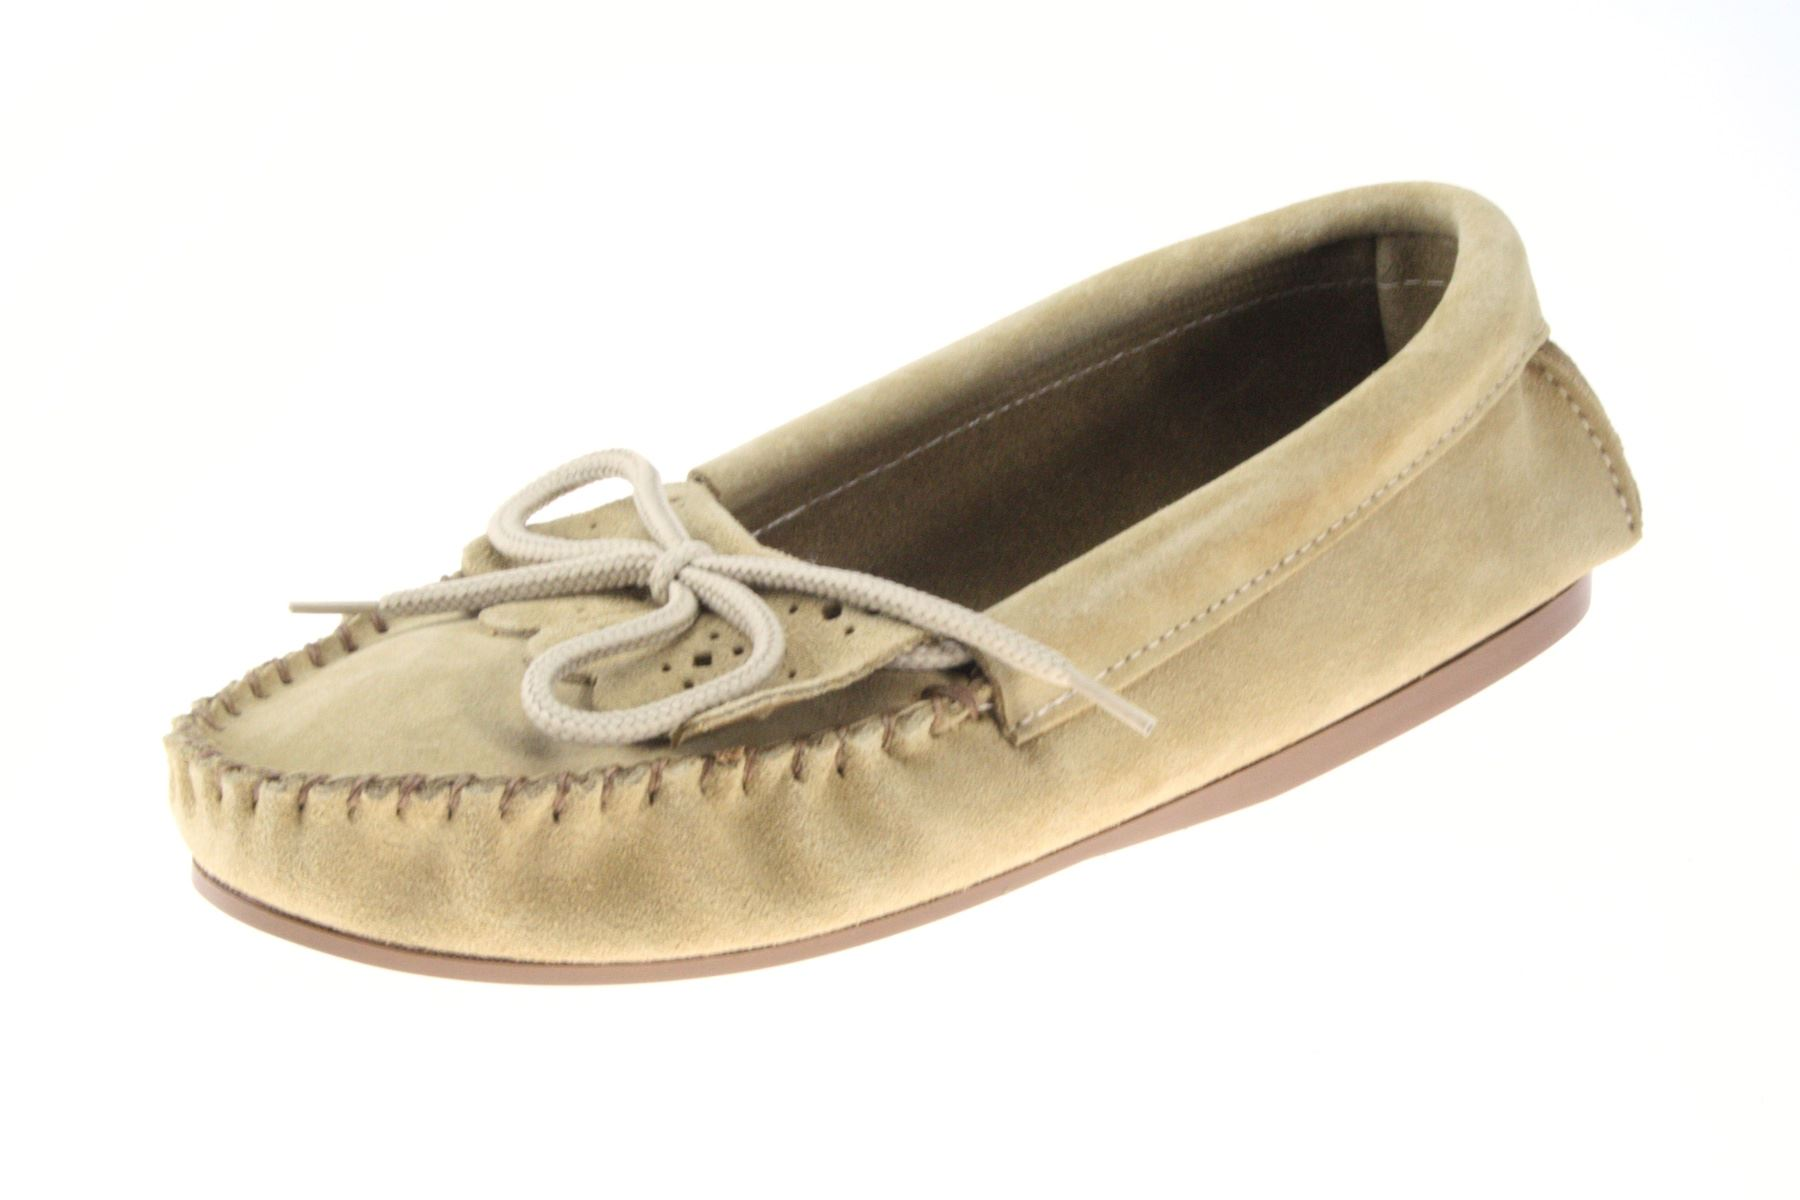 a81ca091e93 Details about Coopers Beige Slip On Suede Leather Ladies Moccasins Slippers  Handmade England